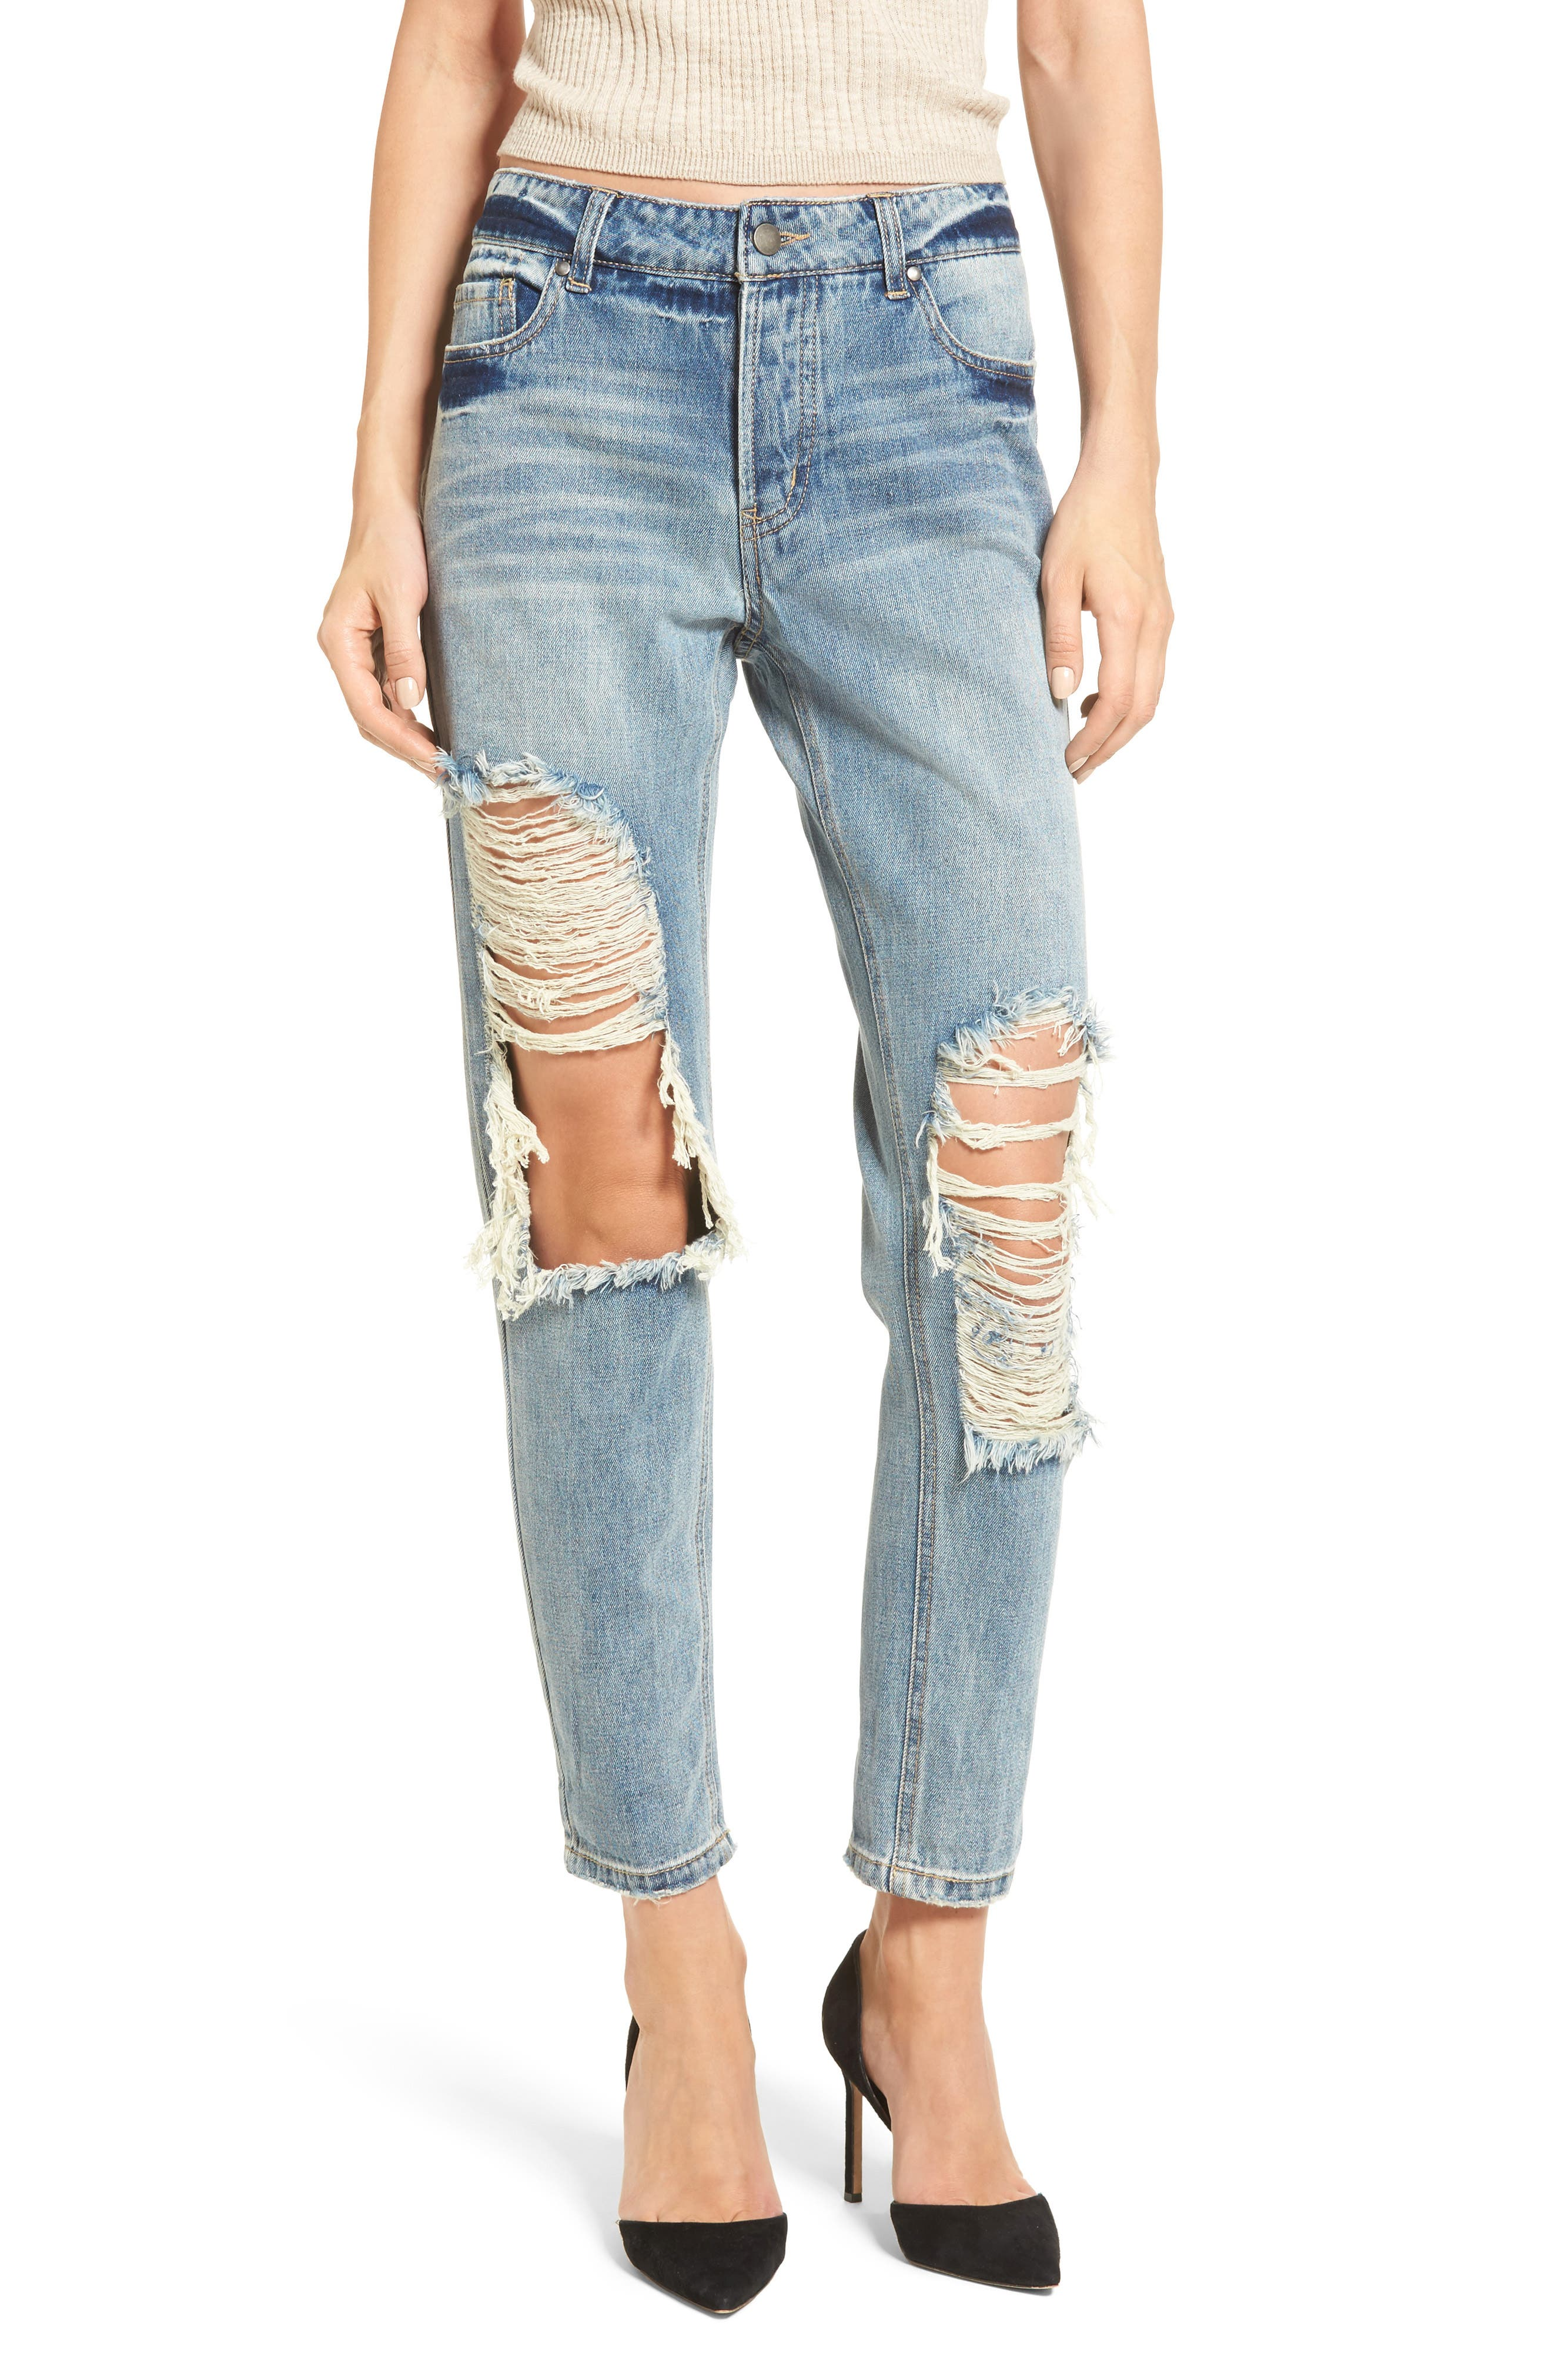 Cyrus High Waist Ankle Jeans,                         Main,                         color, SINNER WASH